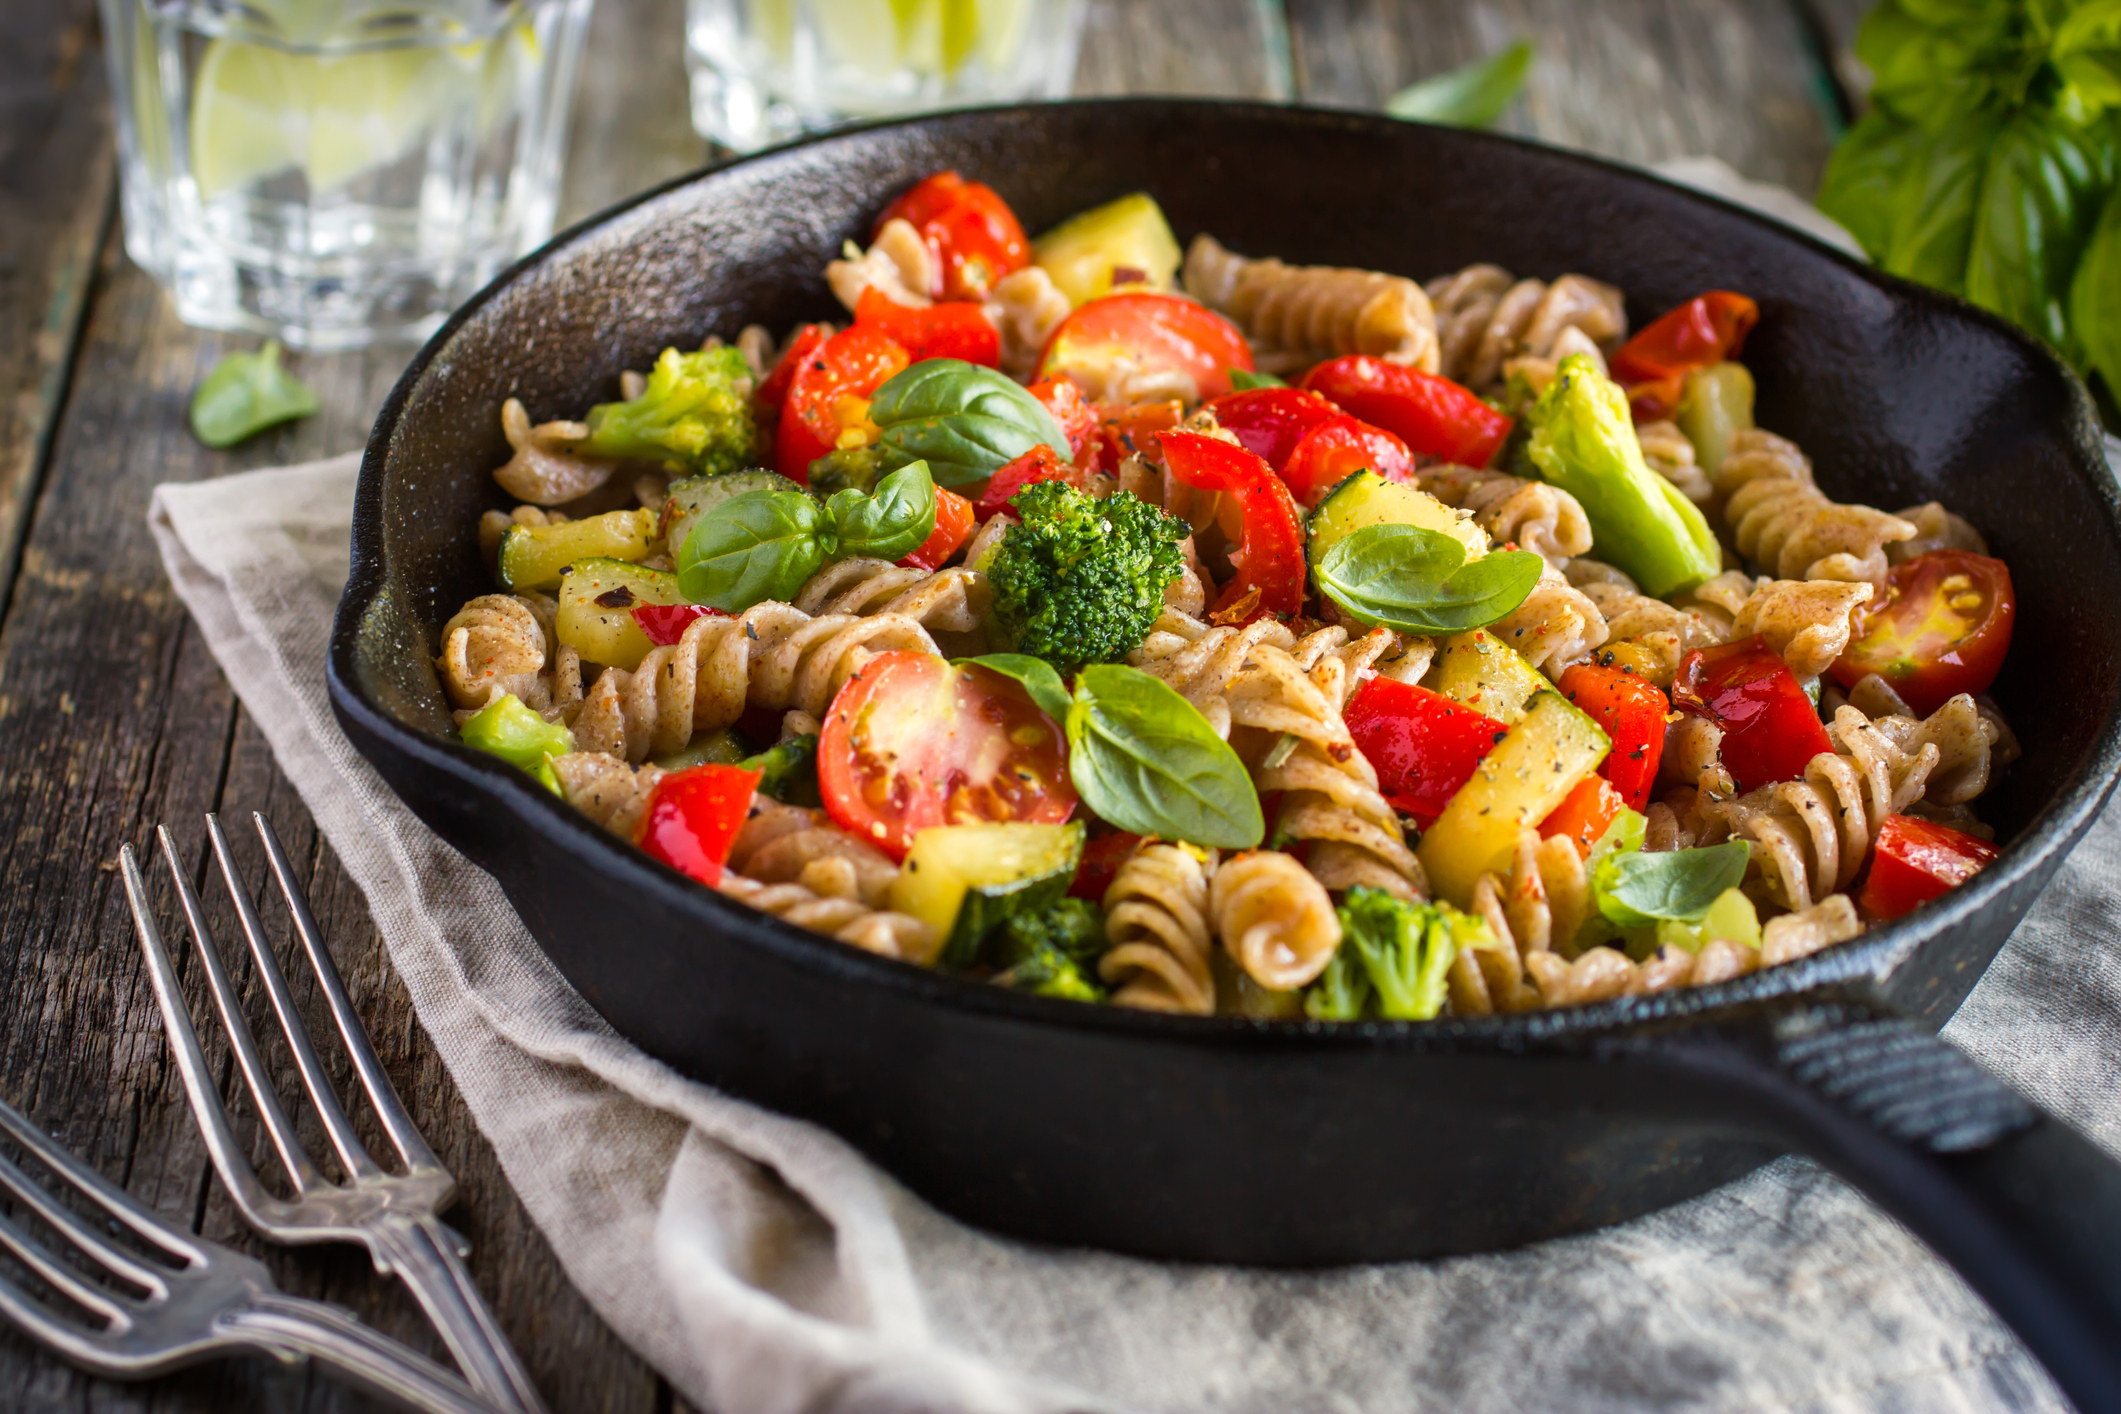 Pasta mixed with vegetables is one way to create a dish.